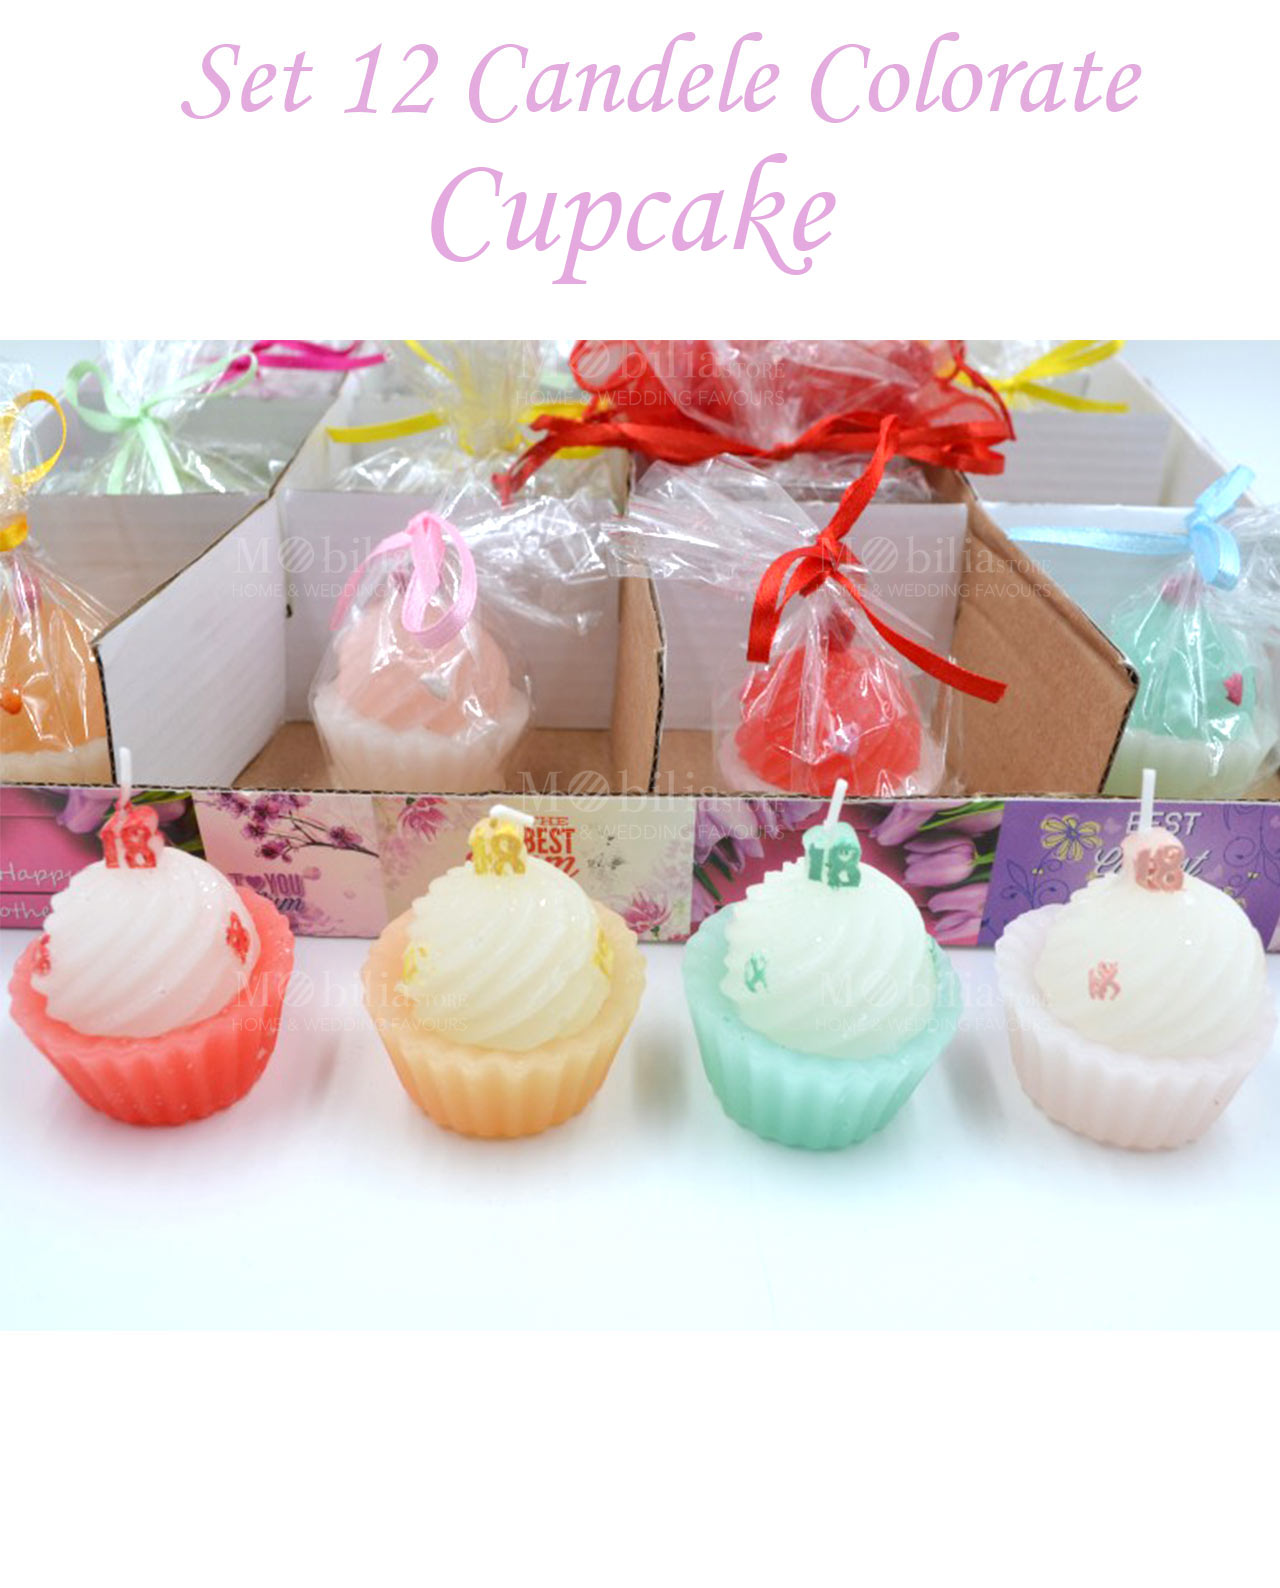 Candela cupcake mobilia store home favours for Candele colorate